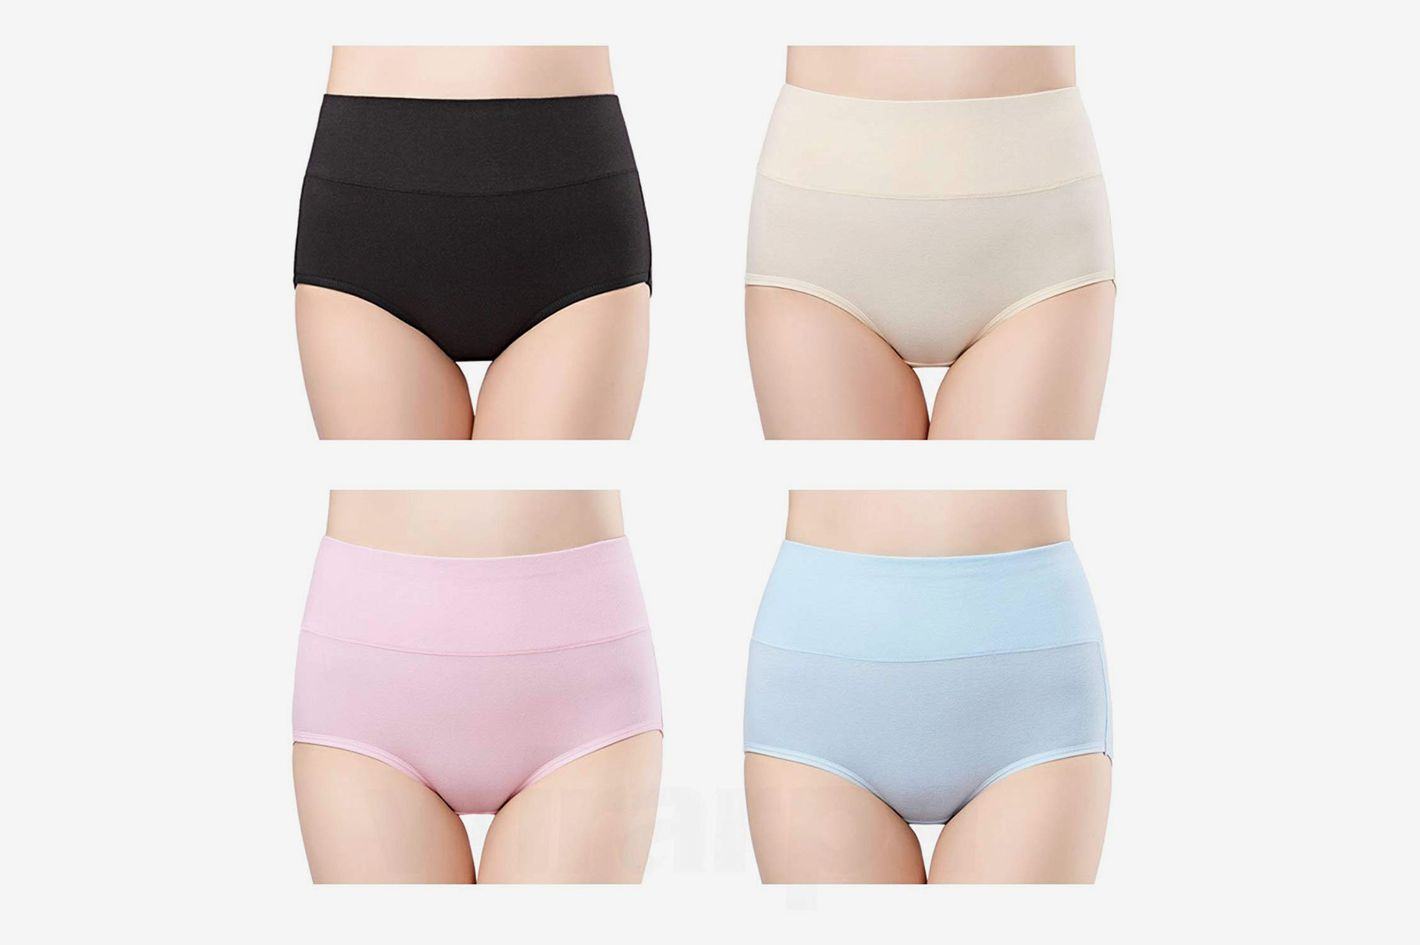 e973767d54e Wirarpa Women s High Waist Cotton Briefs (4-Pack)